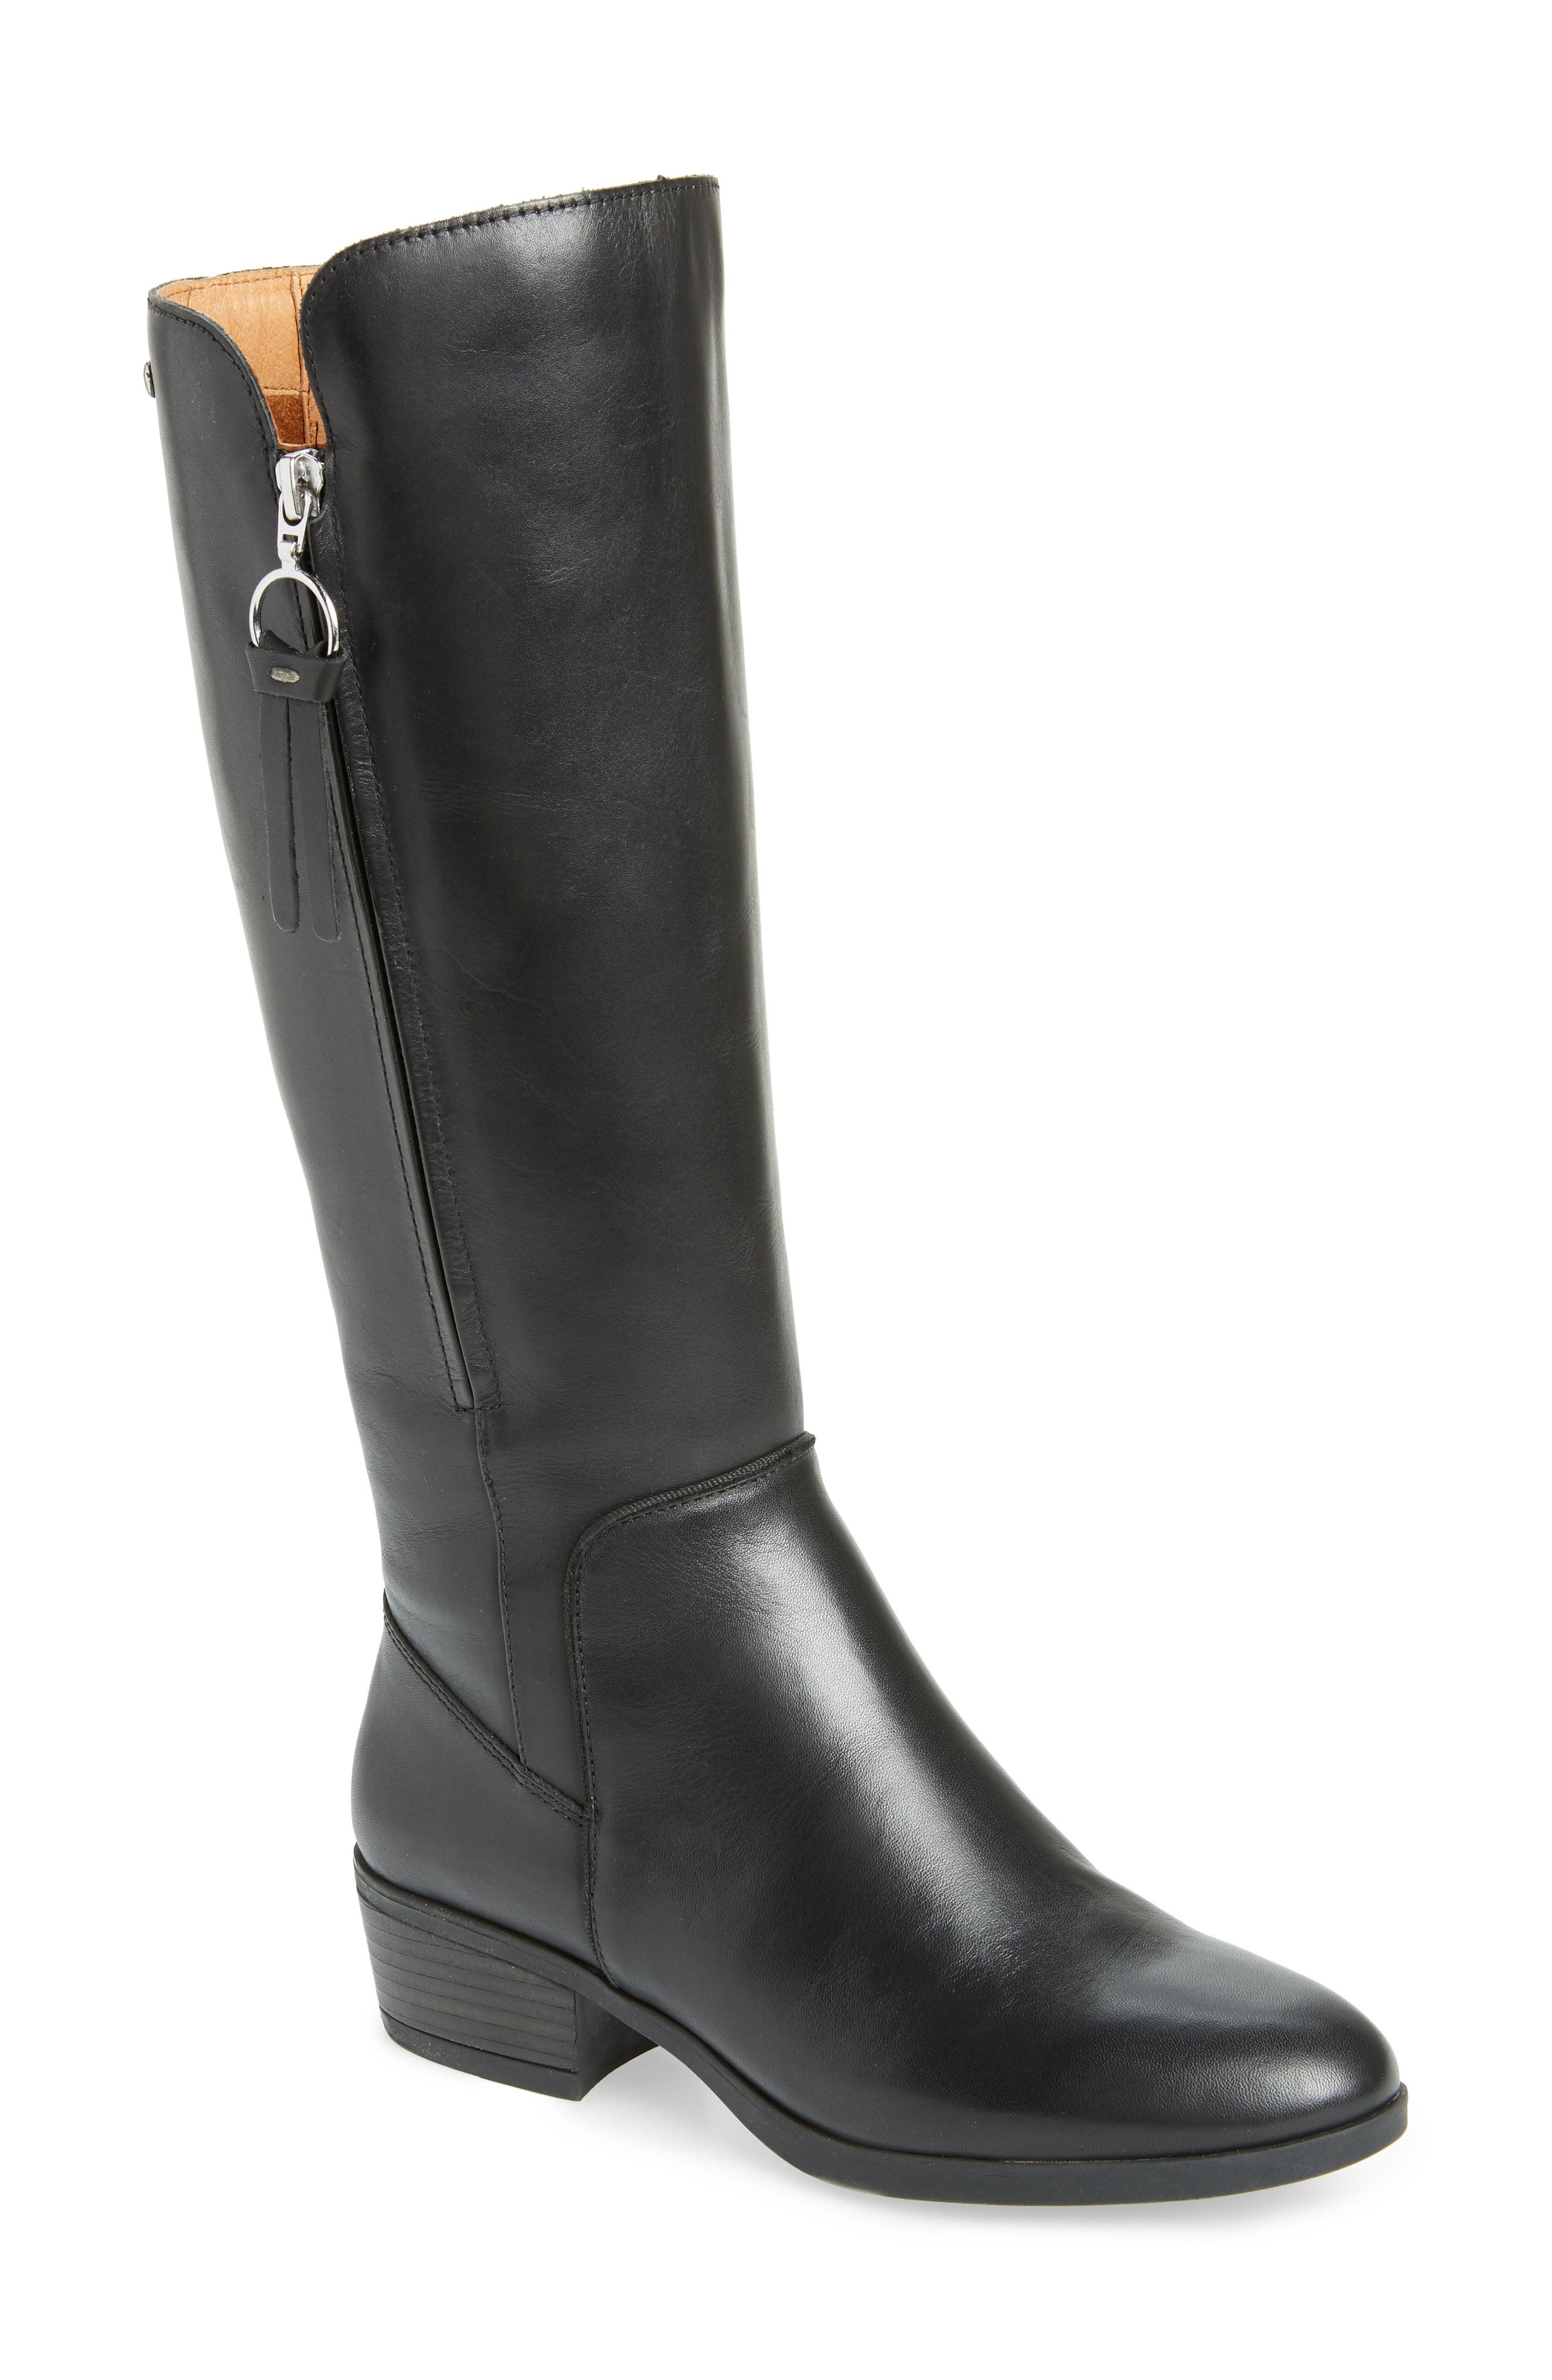 Daroca Knee High Boot,                             Main thumbnail 1, color,                             BLACK LEATHER